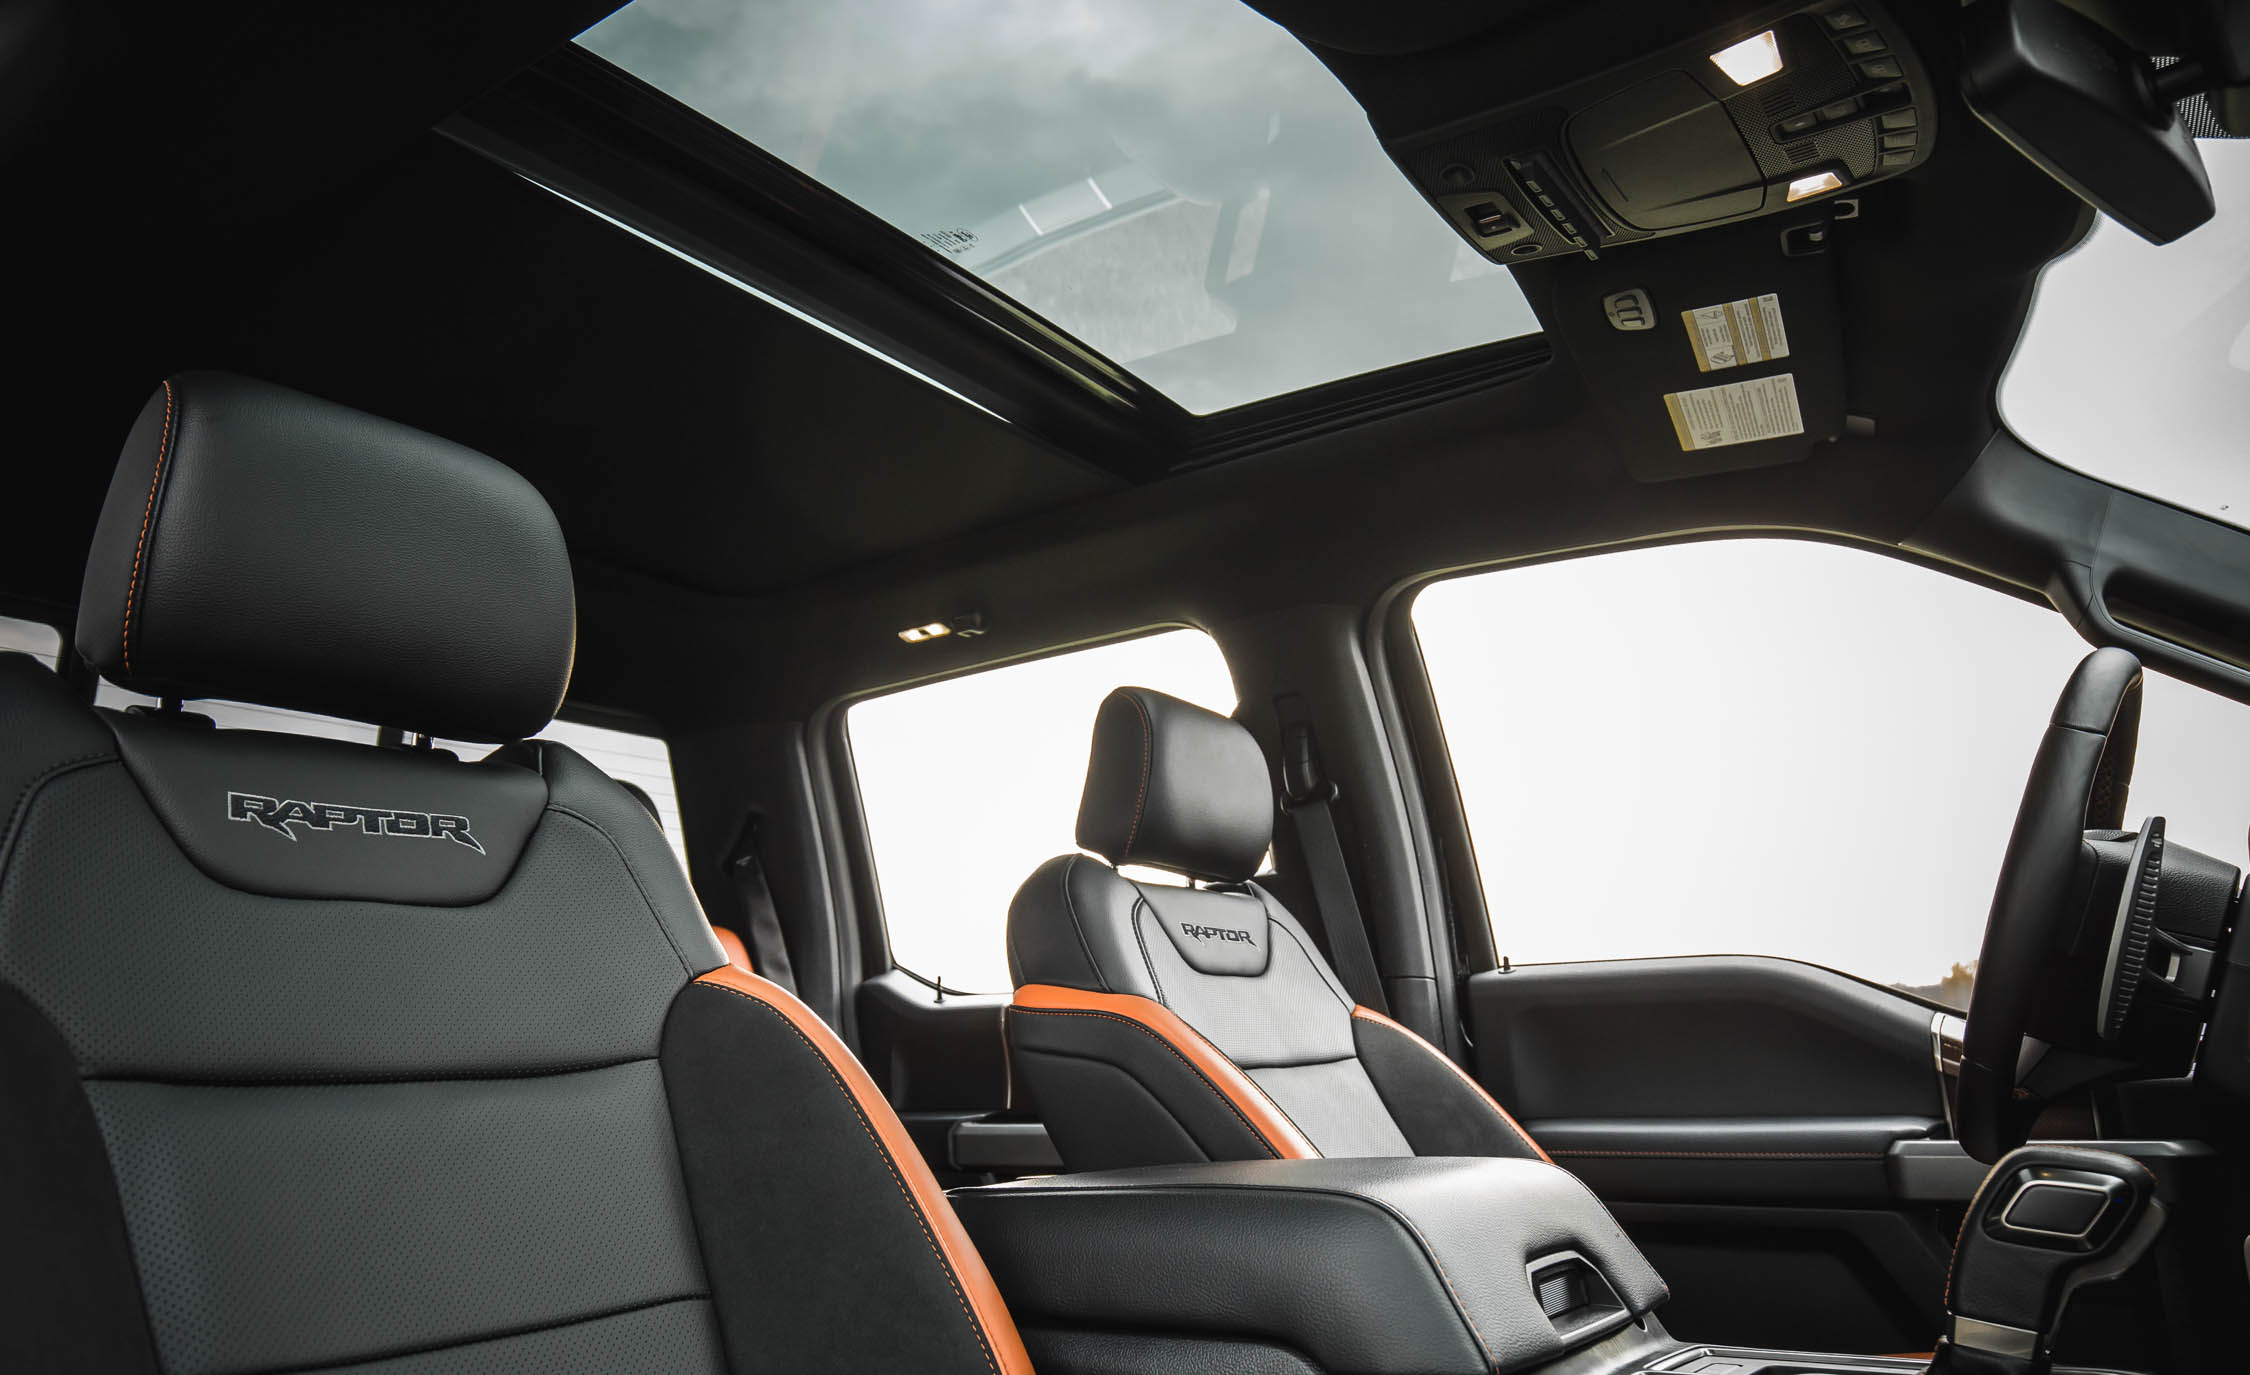 2017 Ford F 150 Raptor SuperCrew Interior Seats Sunroof (View 15 of 47)